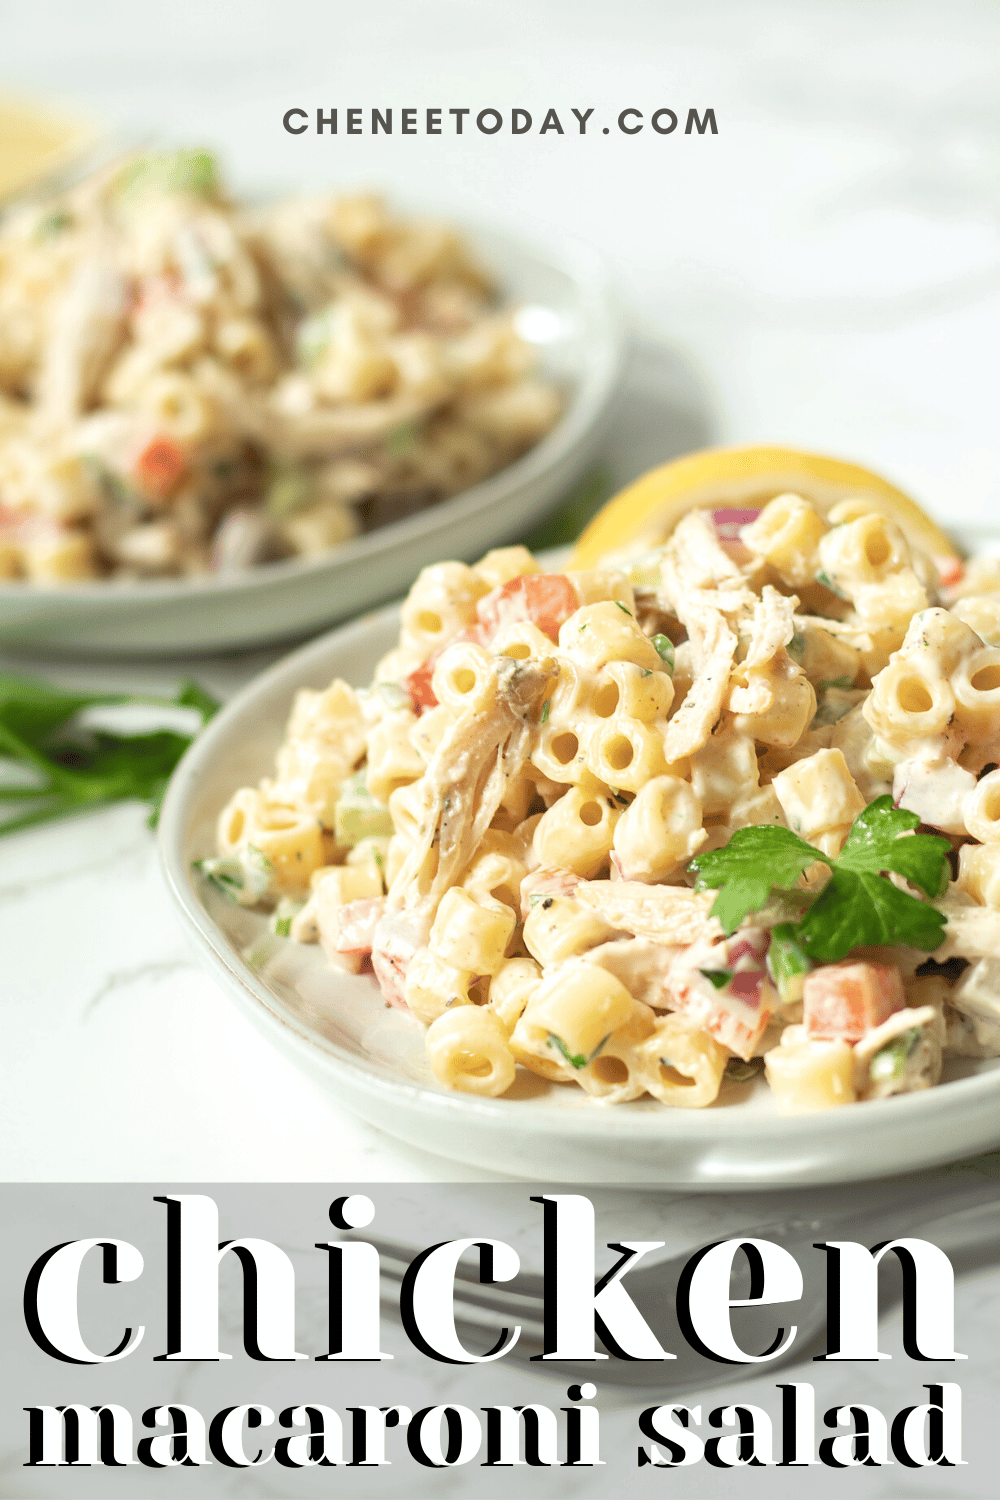 Chicken Macaroni Salad Recipe - So Easy with Leftover or Canned Chicken! | Chenée Today